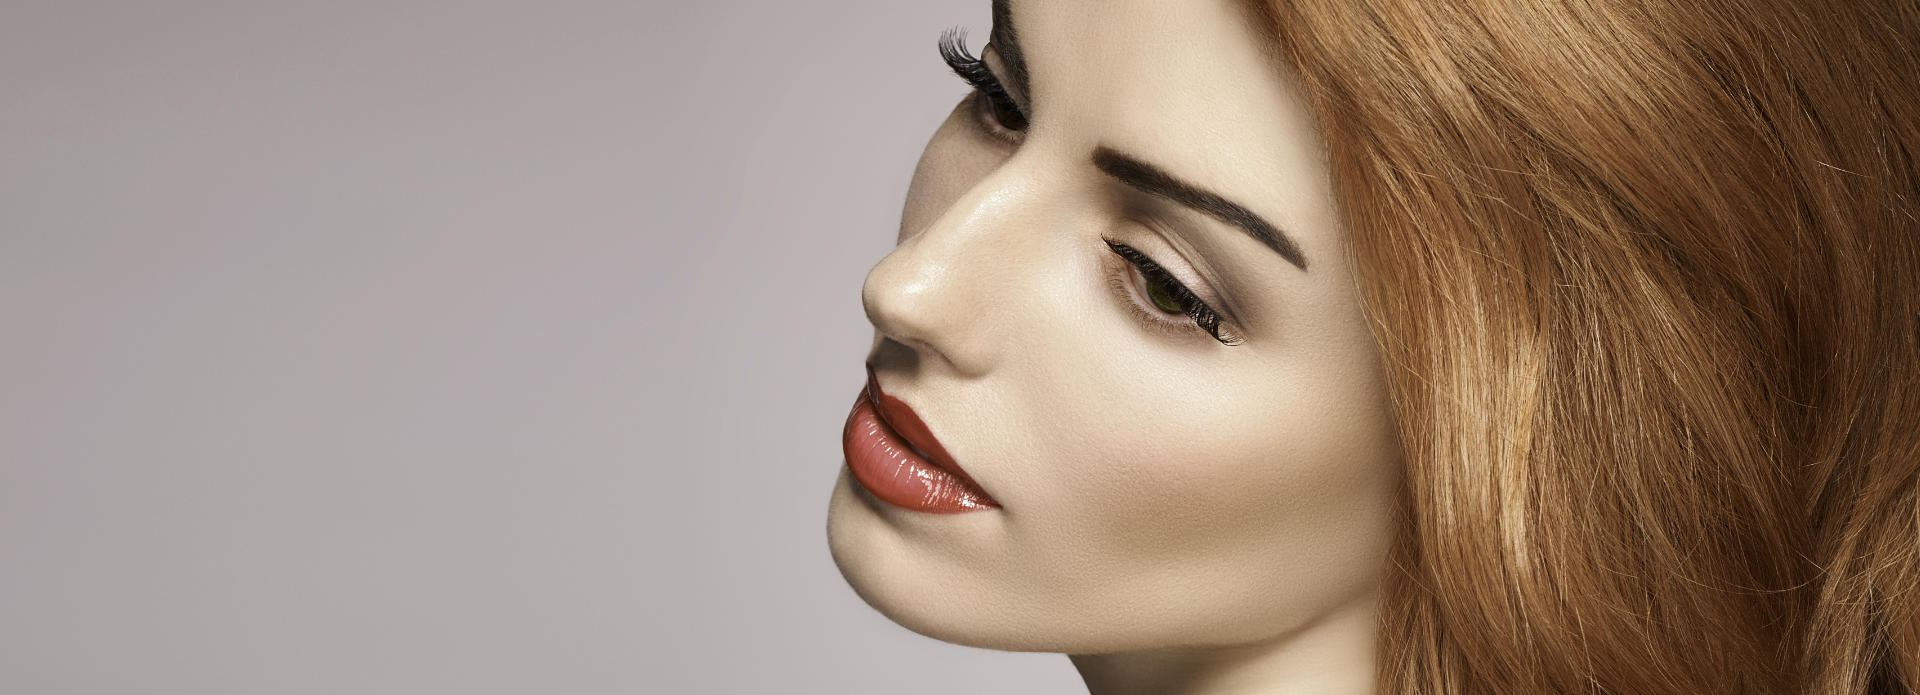 Face of a beautiful woman with flowless skin after clear+brilliant laser treatment.